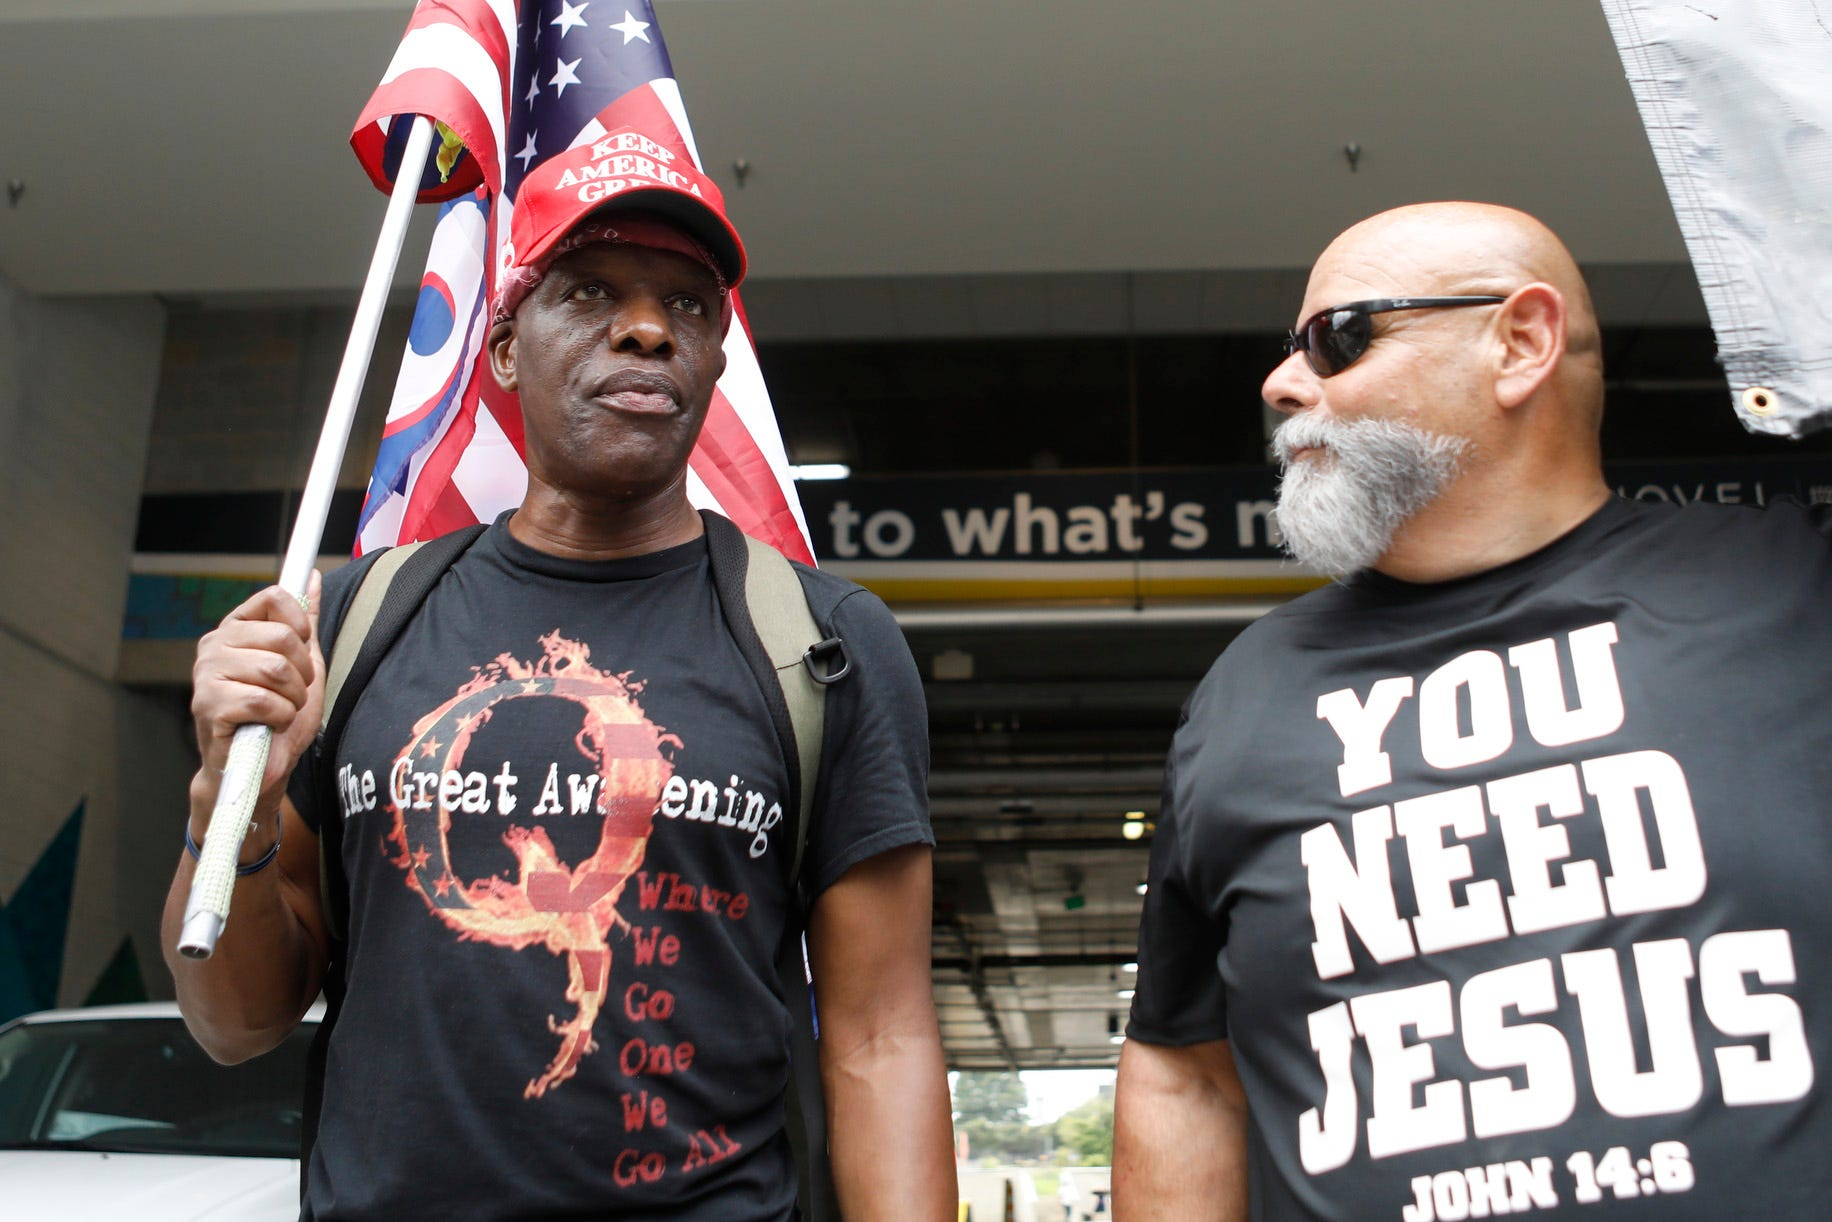 Ken Lane, a supporter of President Donald Trump and QAnon (L), and Ruben Israel of Bible Believers talk about their political beliefs near the Republican National Convention in Uptown on August 24, 2020 in Charlotte, North Carolina.